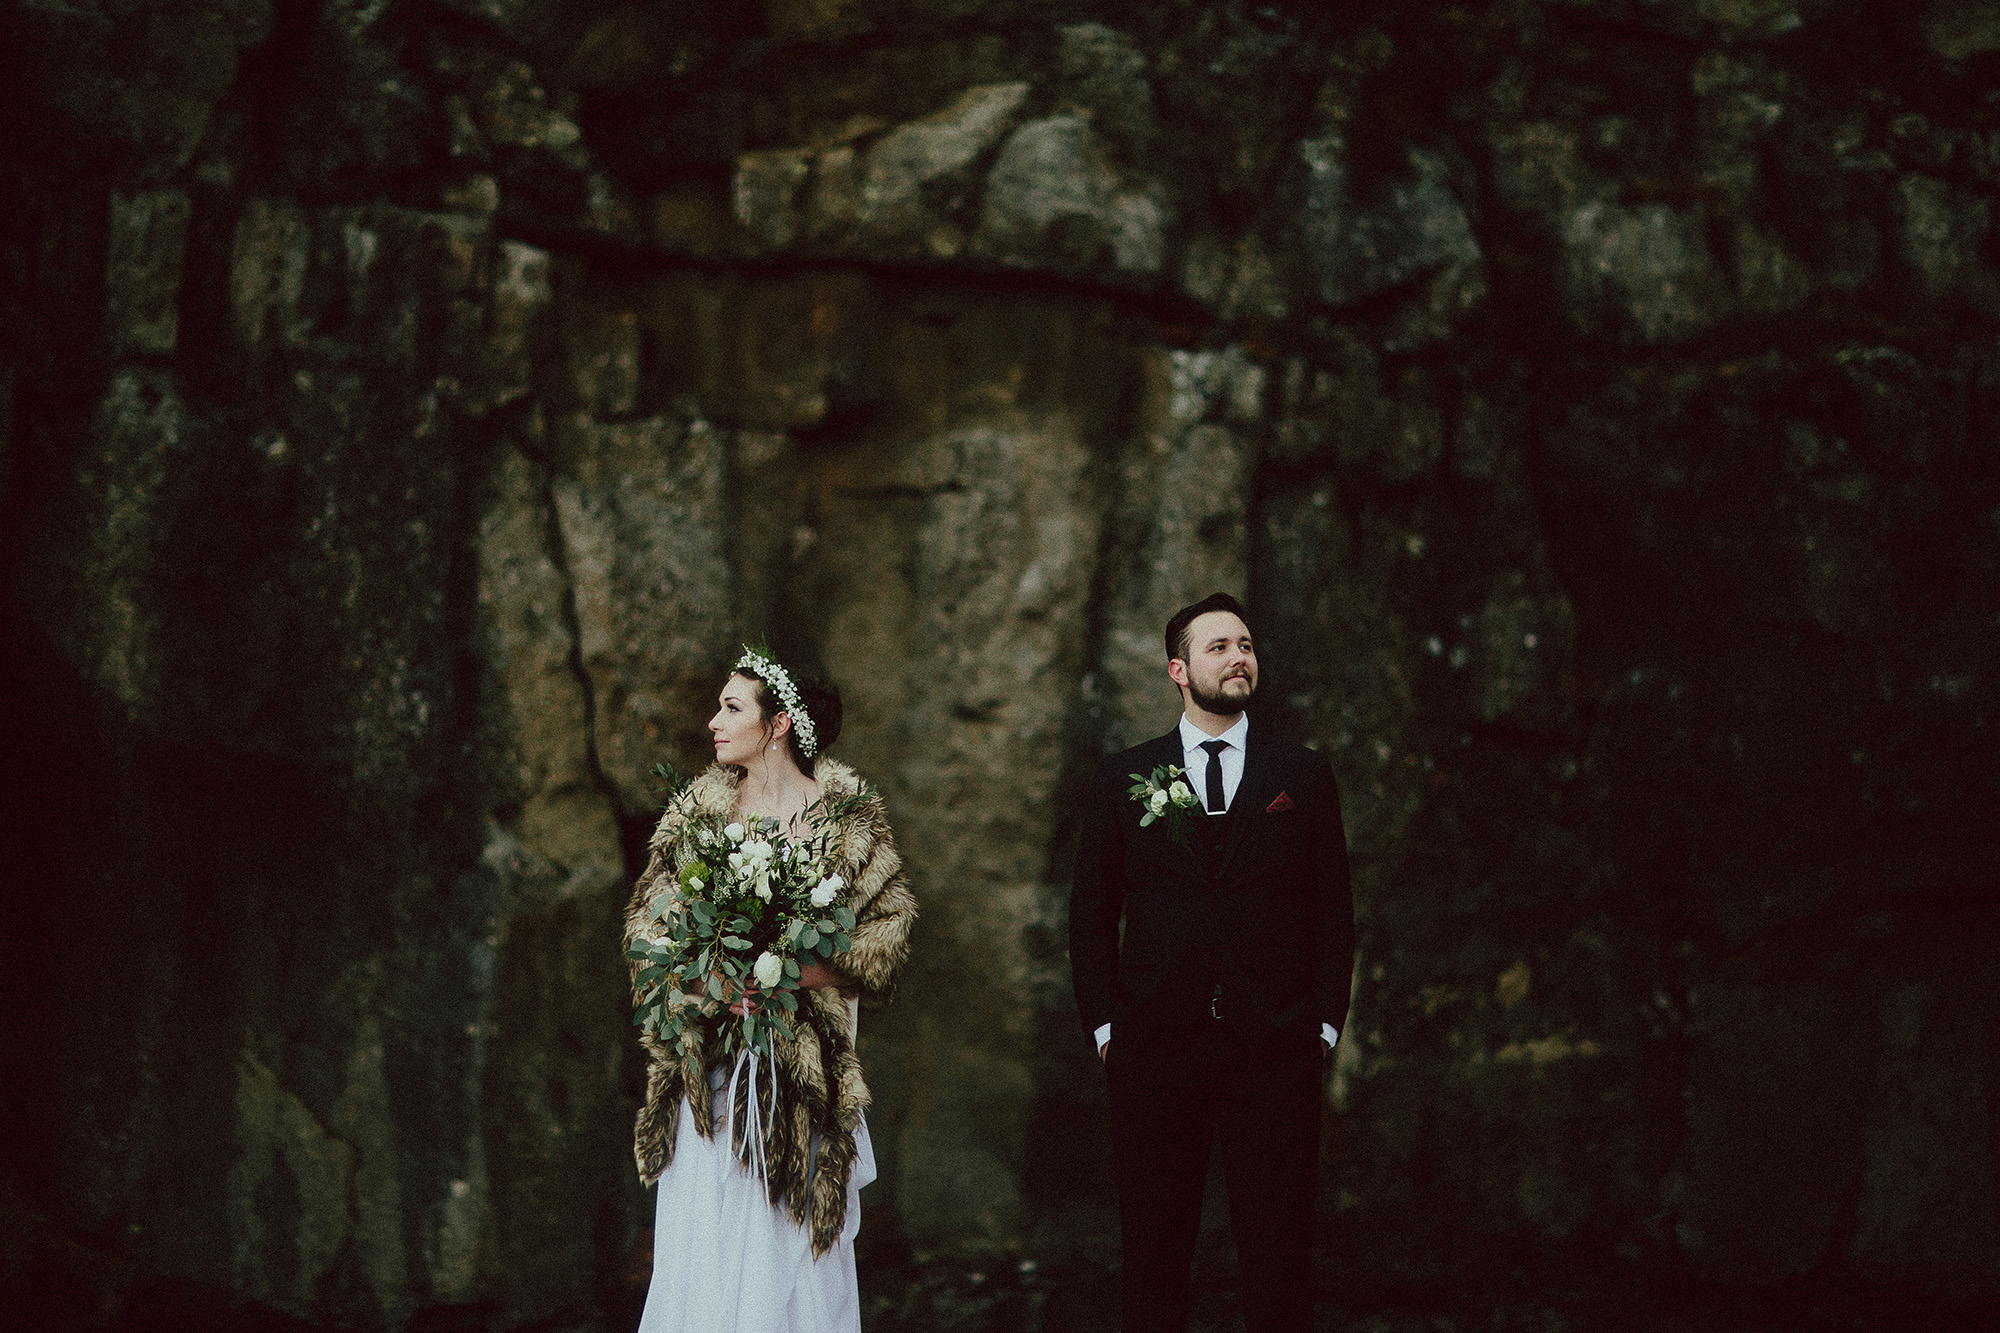 Forged_in_the_North_-_Iceland_Destination_Wedding_3.jpg